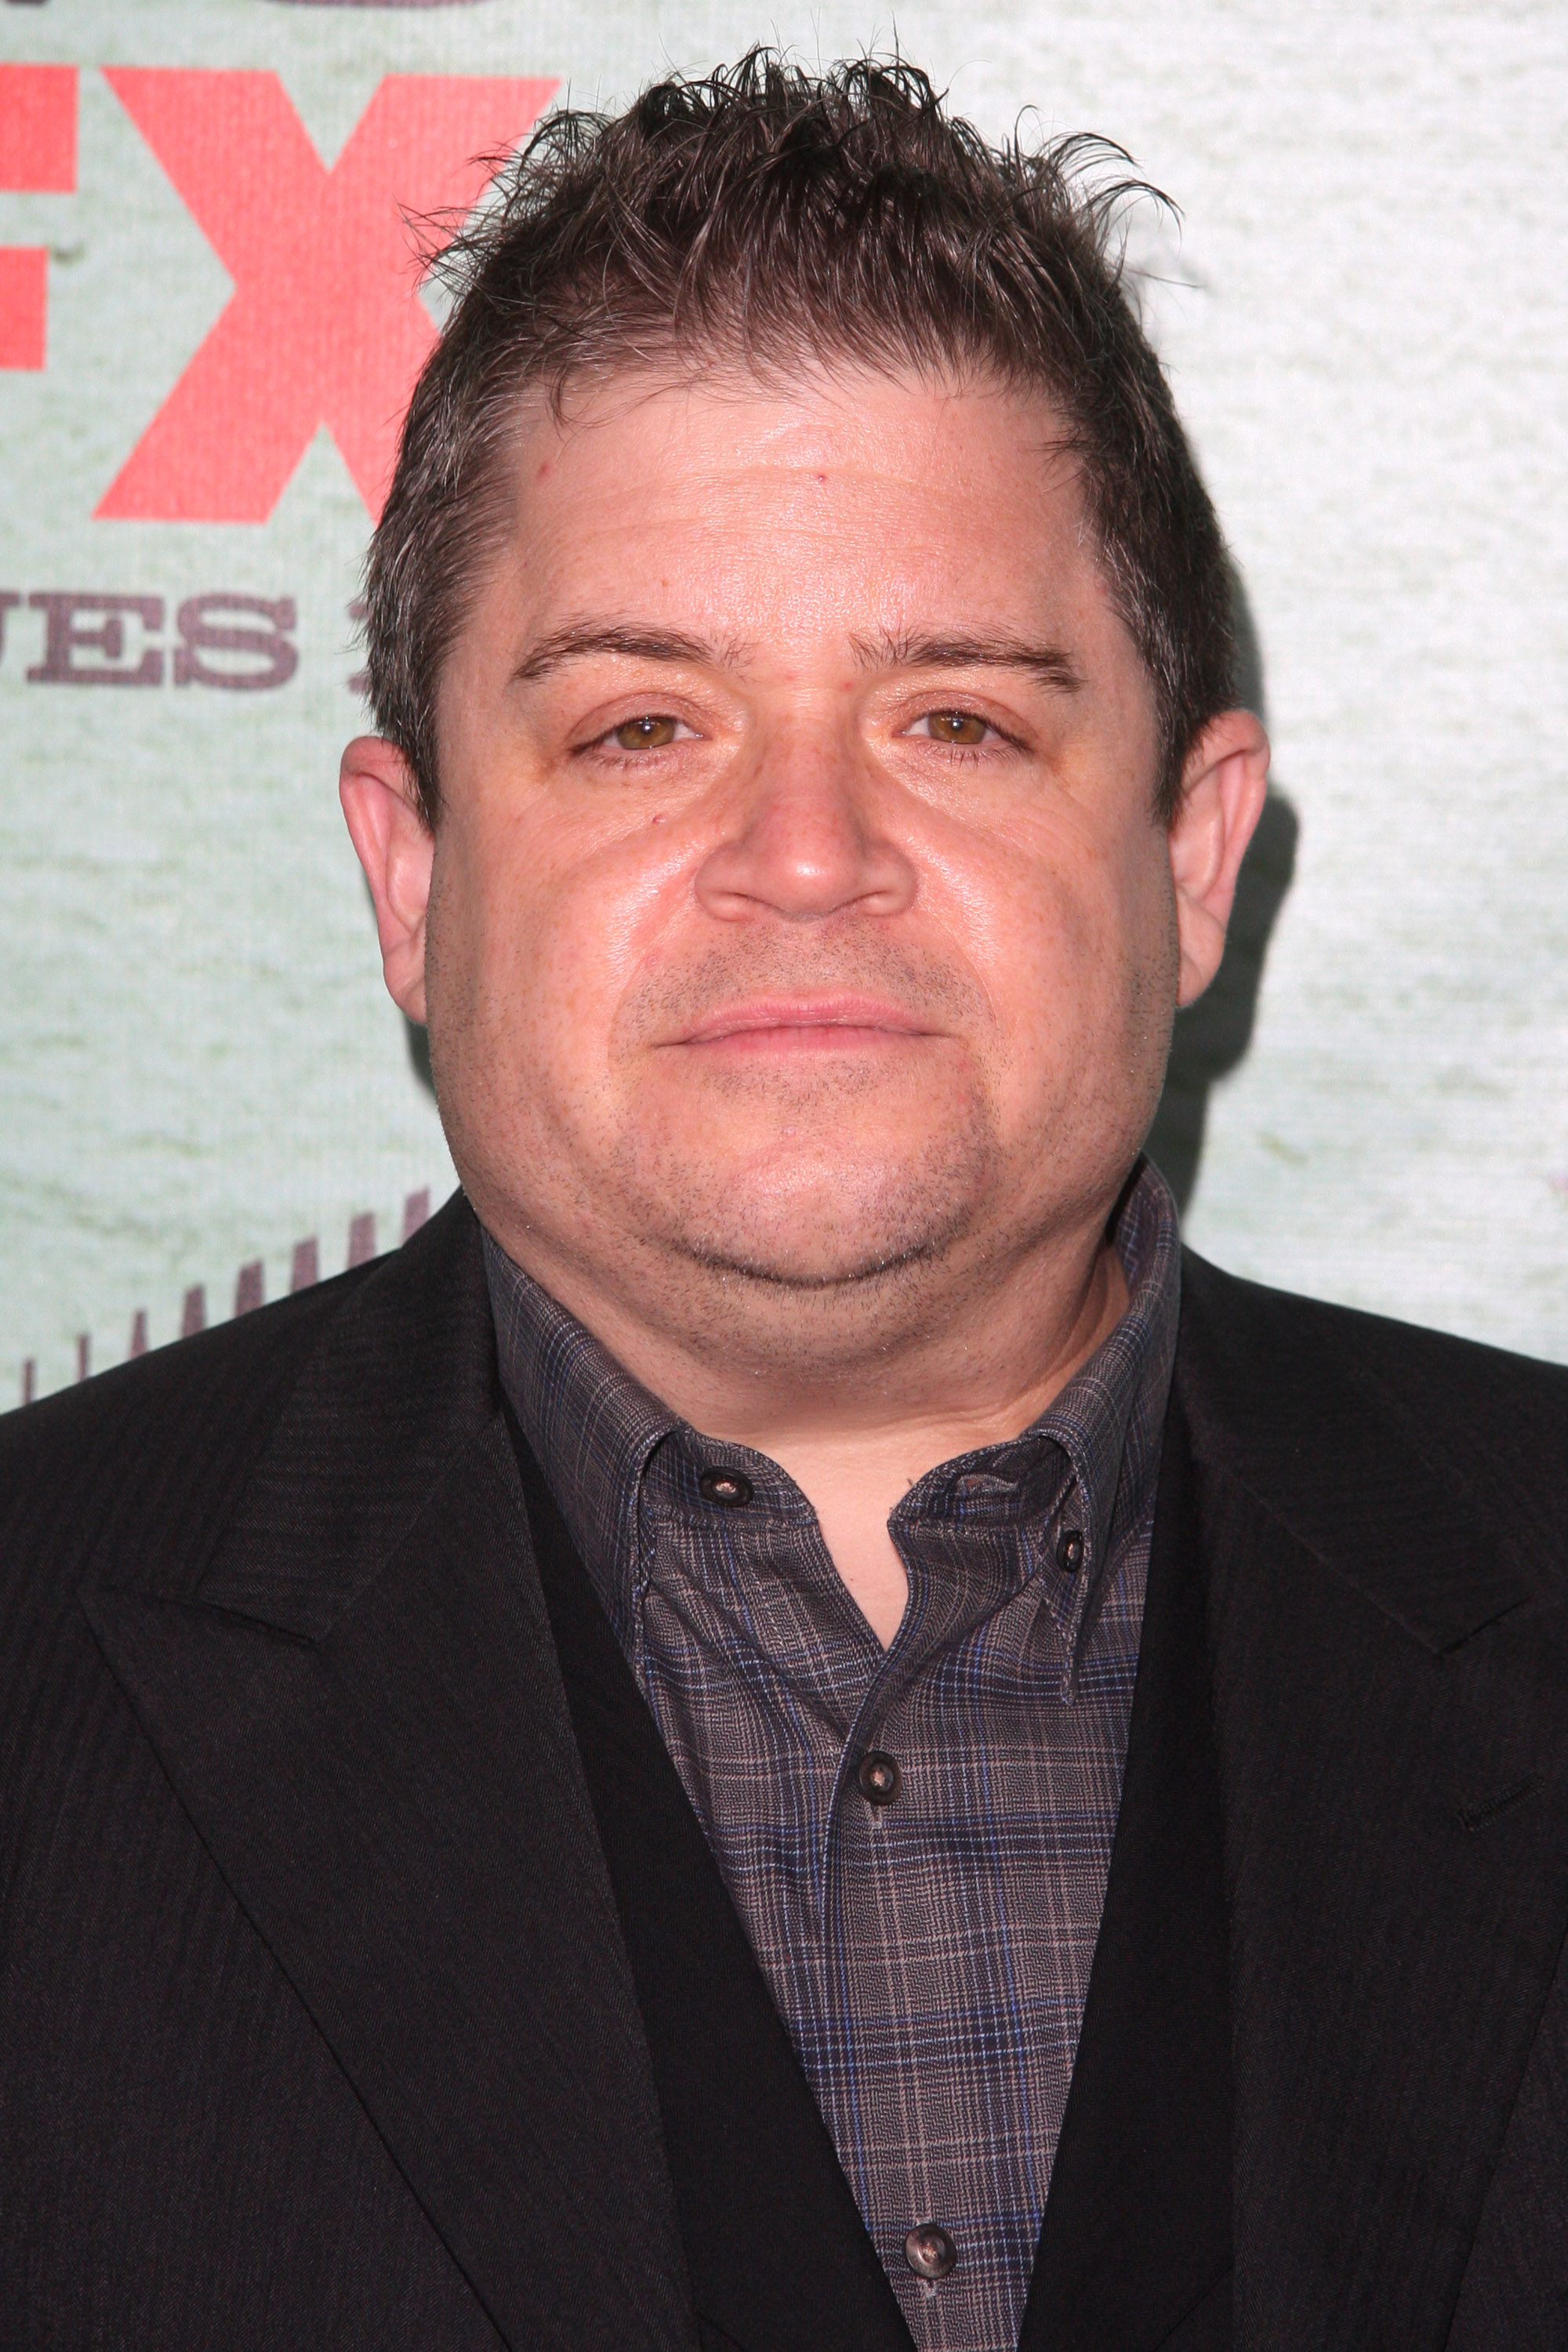 The 48-year old son of father Larry J. Oswalt and mother Carla Oswalt, 170 cm tall Patton Oswalt in 2017 photo